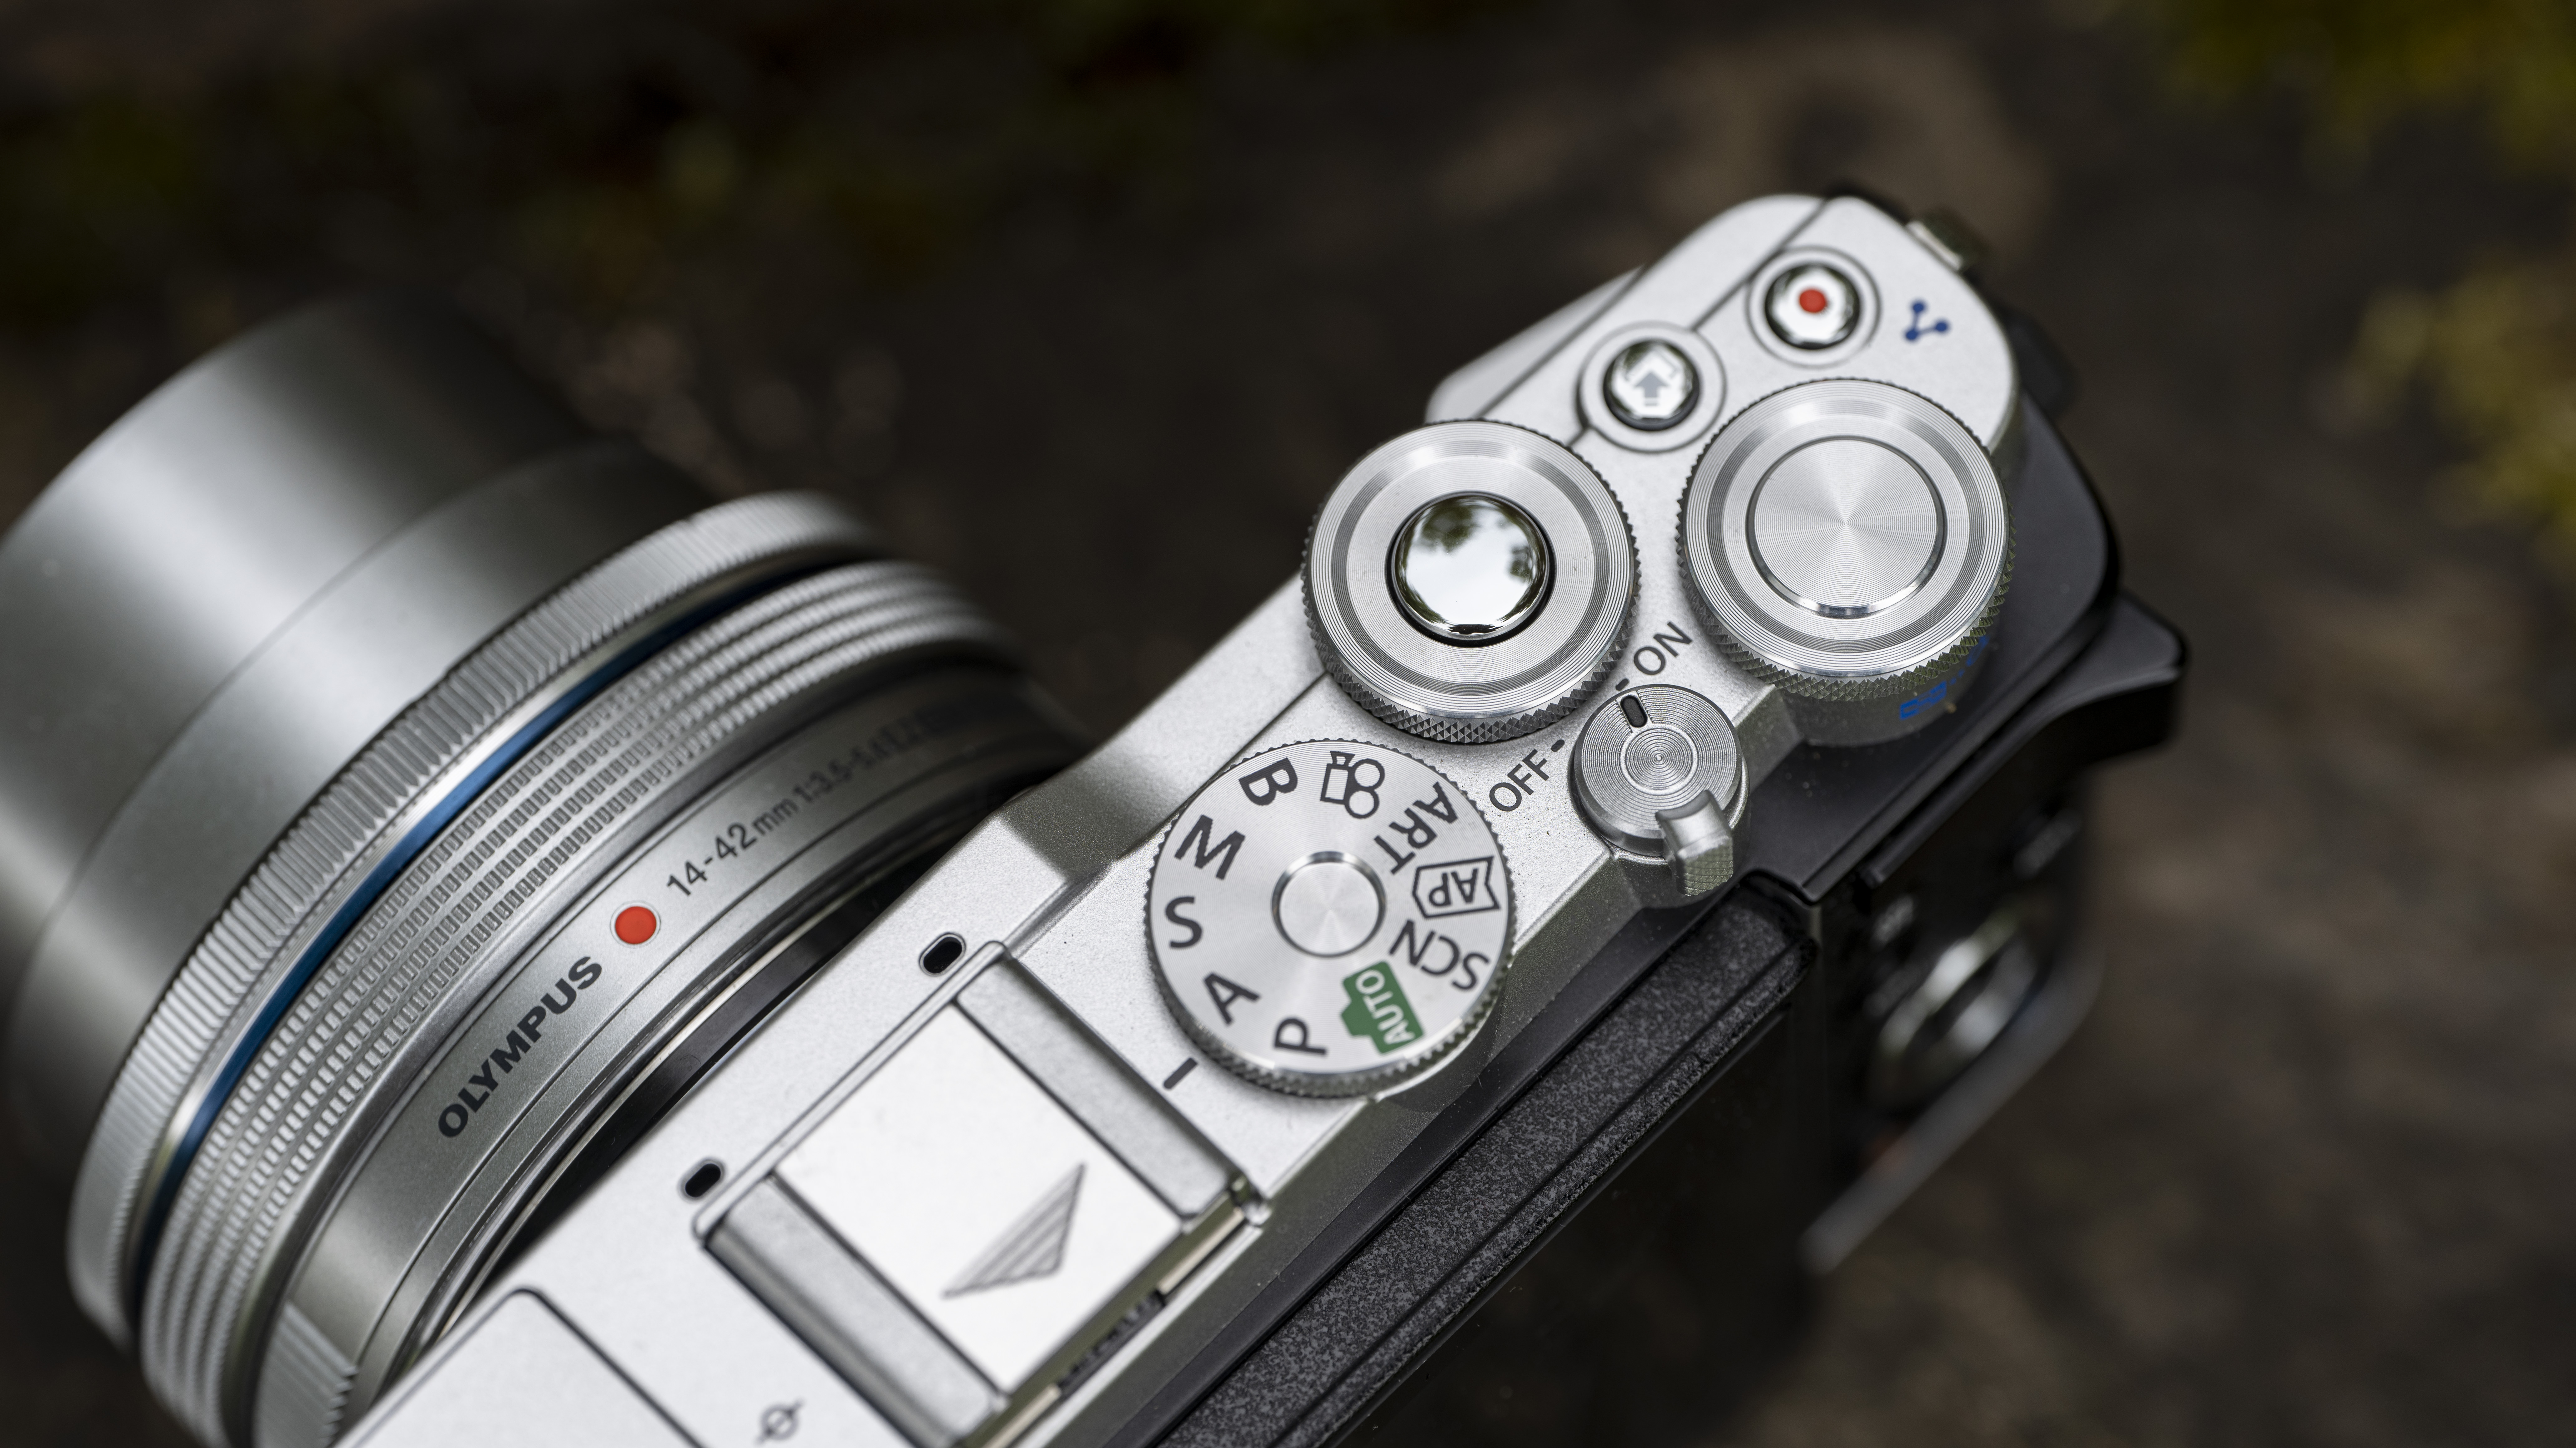 The top plate and dials of the Olympus E-P7